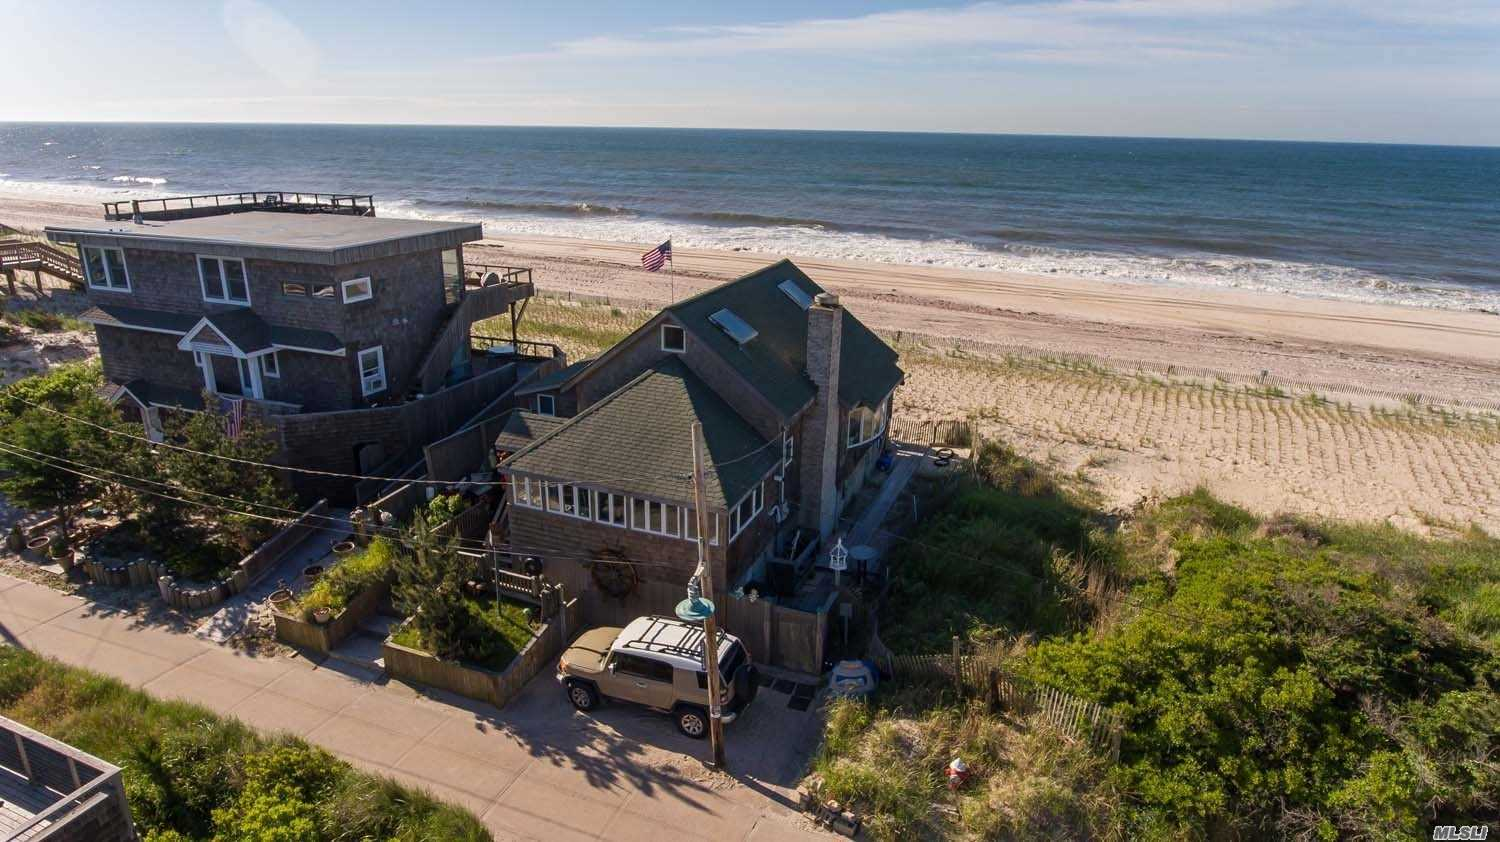 3989 Ocean View Walk - Ocean Beach, New York